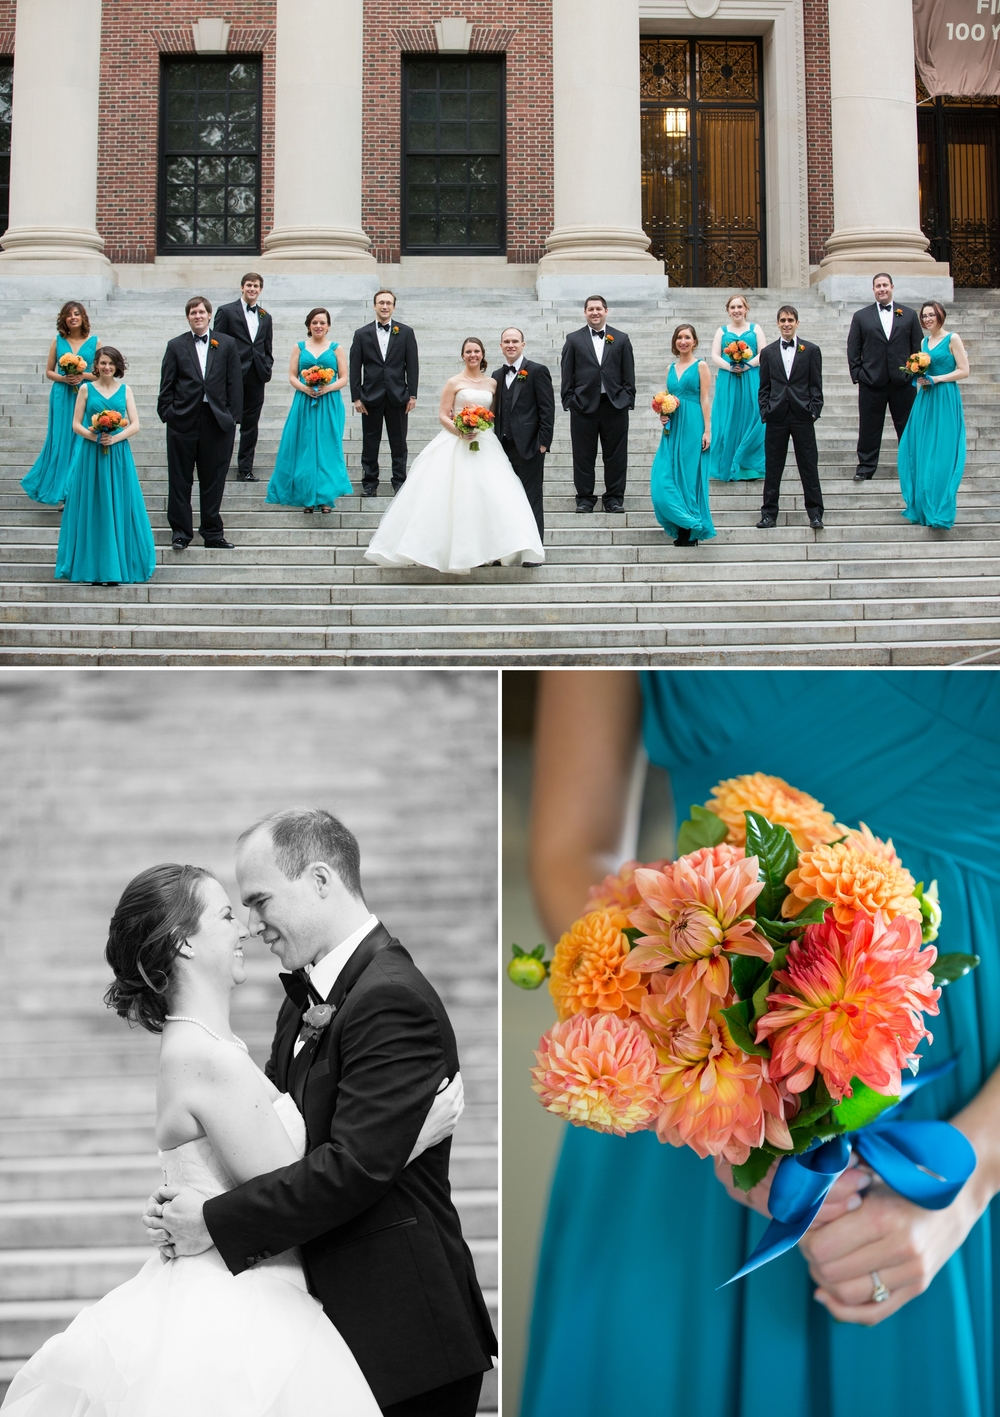 HarvardFacultyClubWedding_BostonMAFallWedding_MichelleGirardPhotography33.jpg